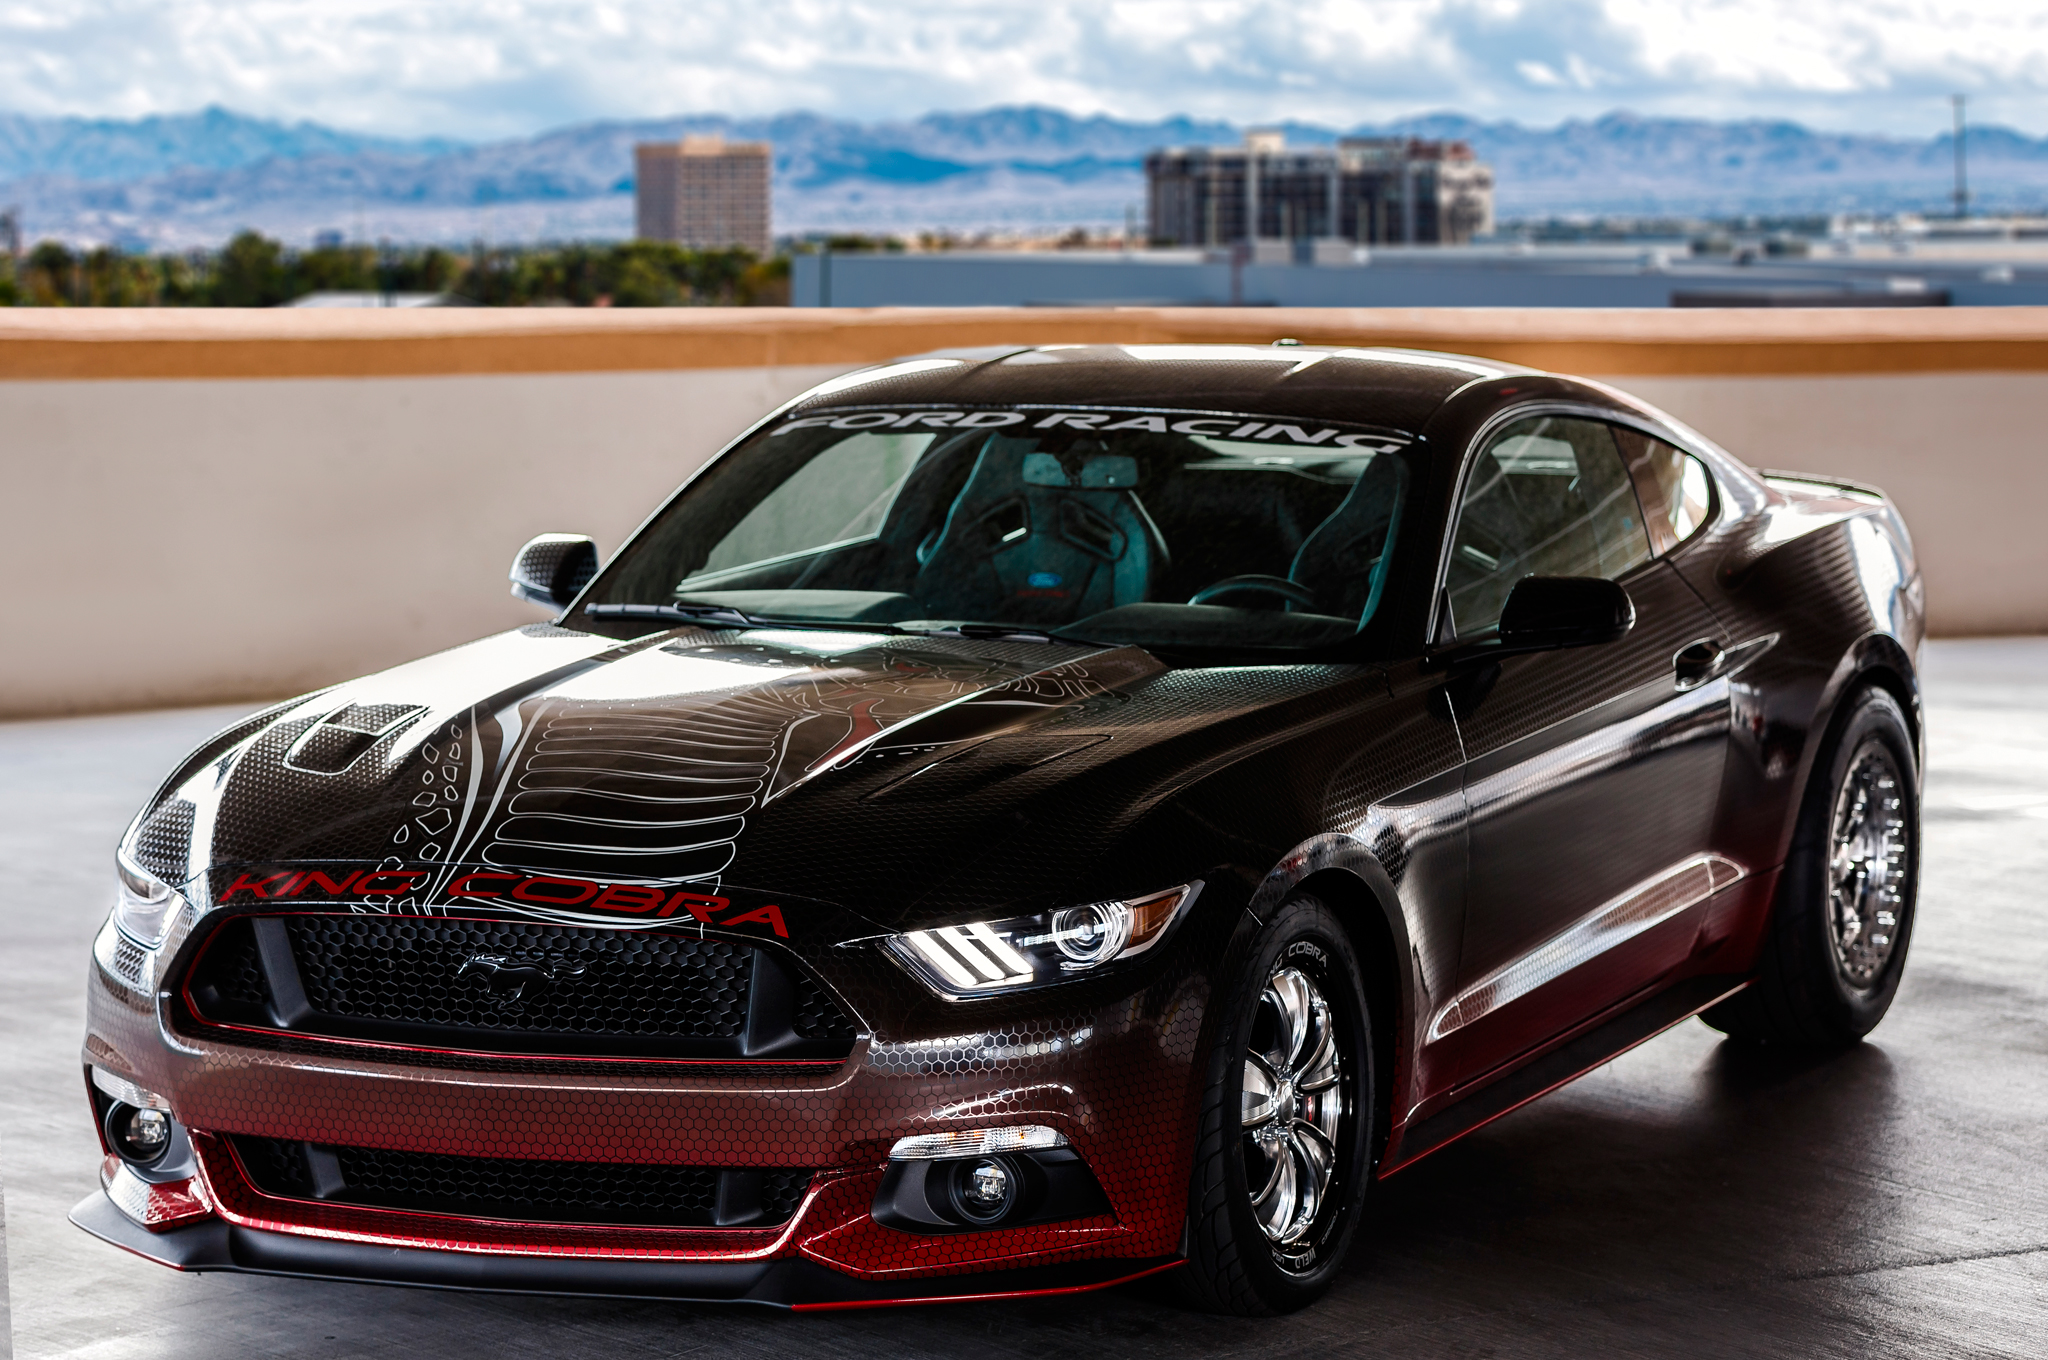 New Generation Of Hot Cars | Mens Fitness